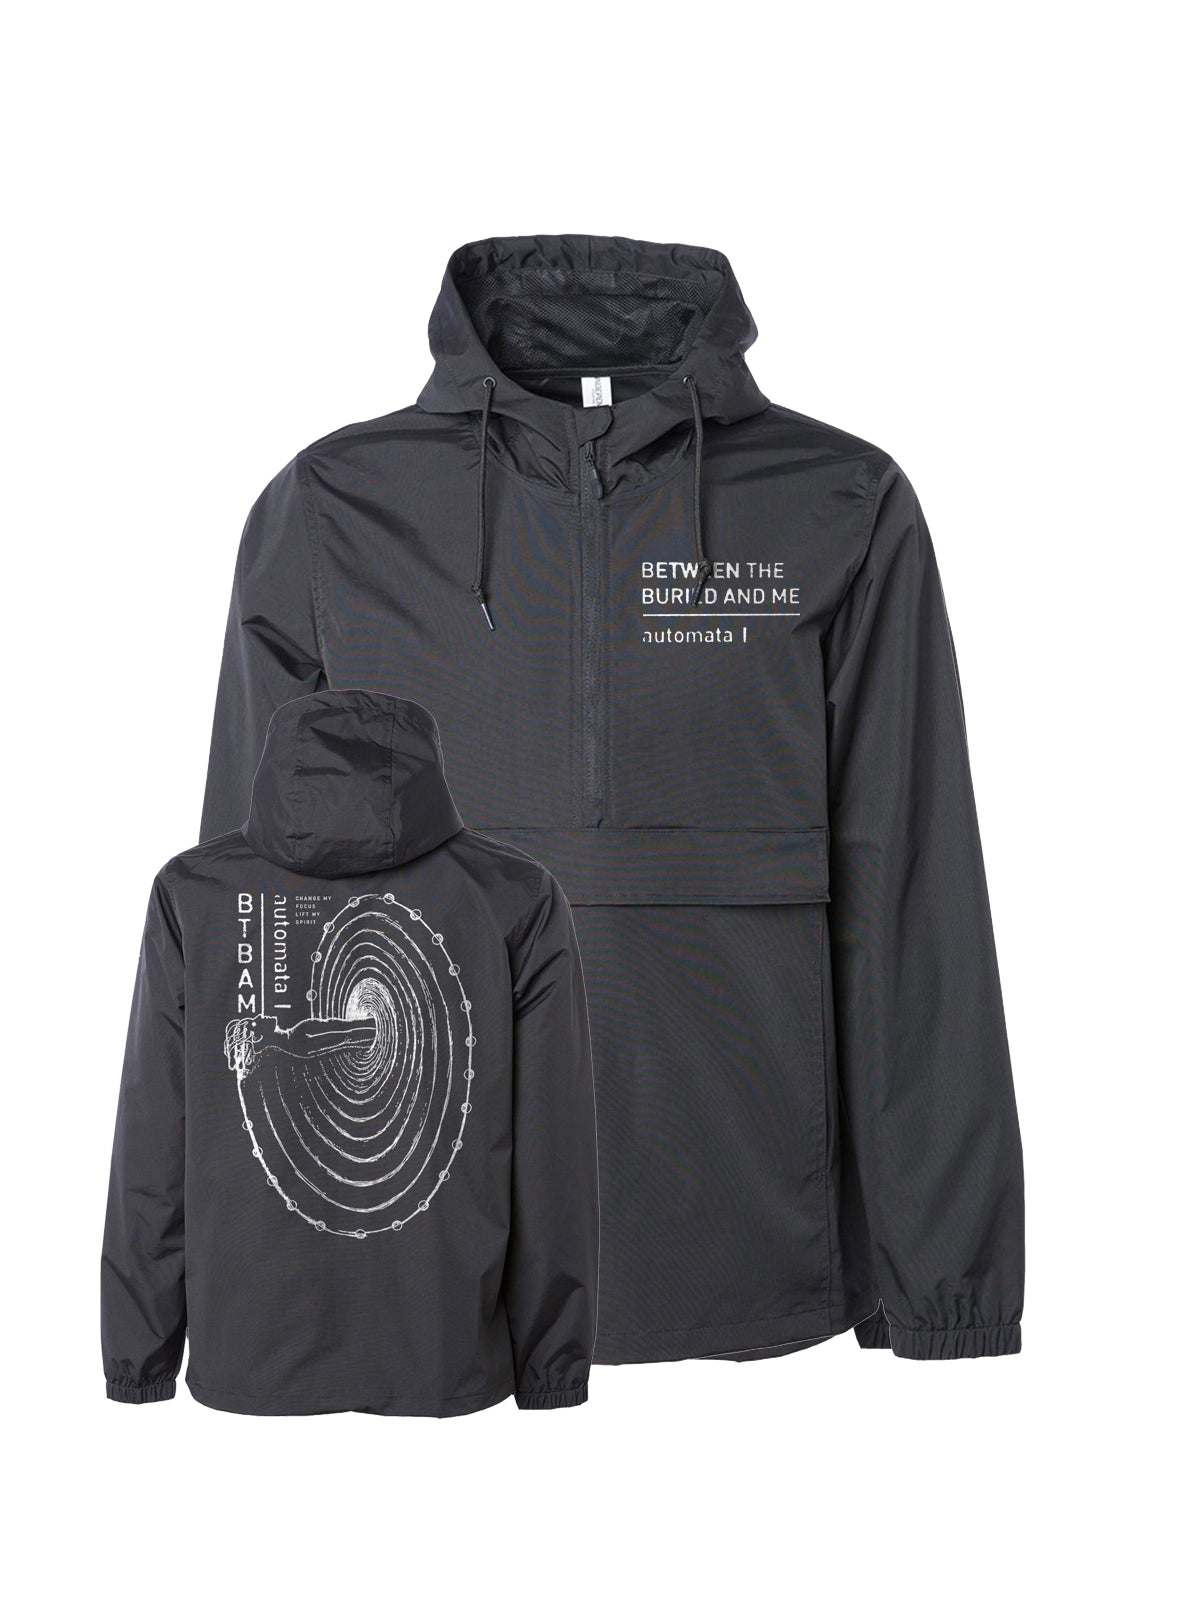 Between the Buried and Me - Automata I Jacket - Merch Limited